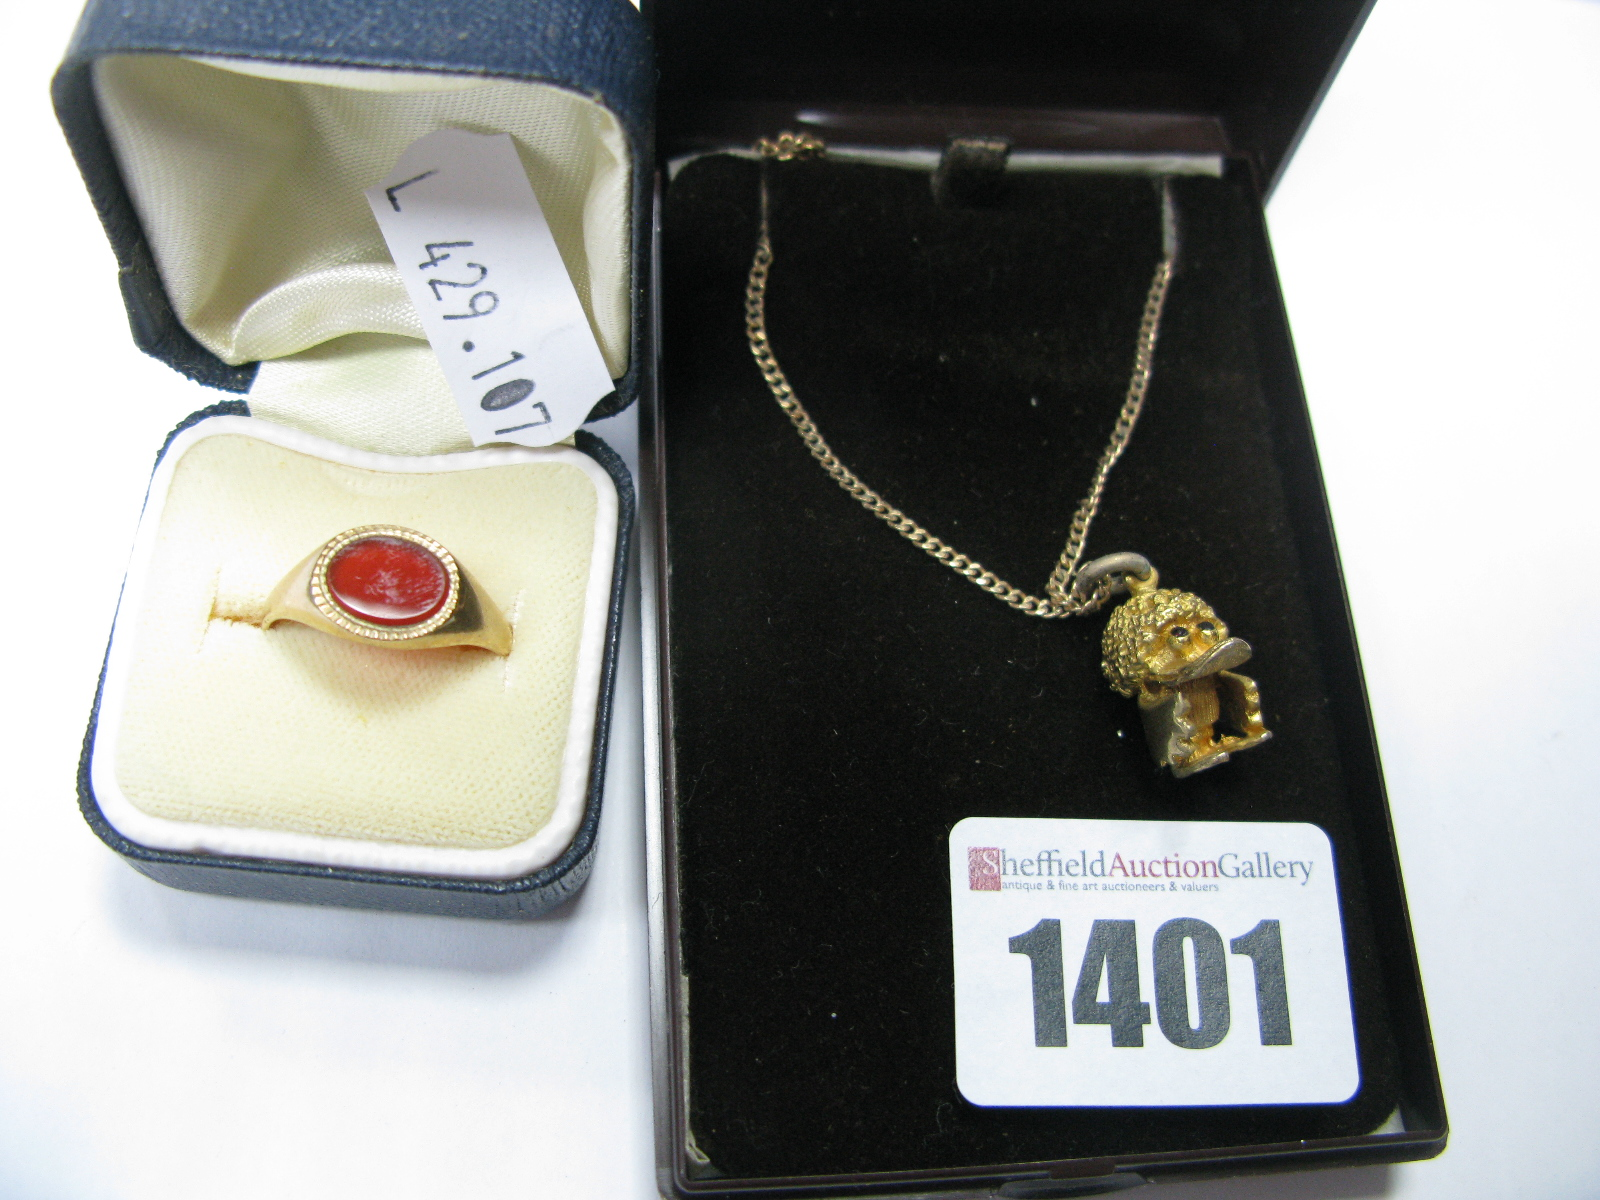 Lot 1401 - A 9ct Gold Hardstone Inset Signet Ring; together with a 9ct gold novelty charm pendant on a chain.